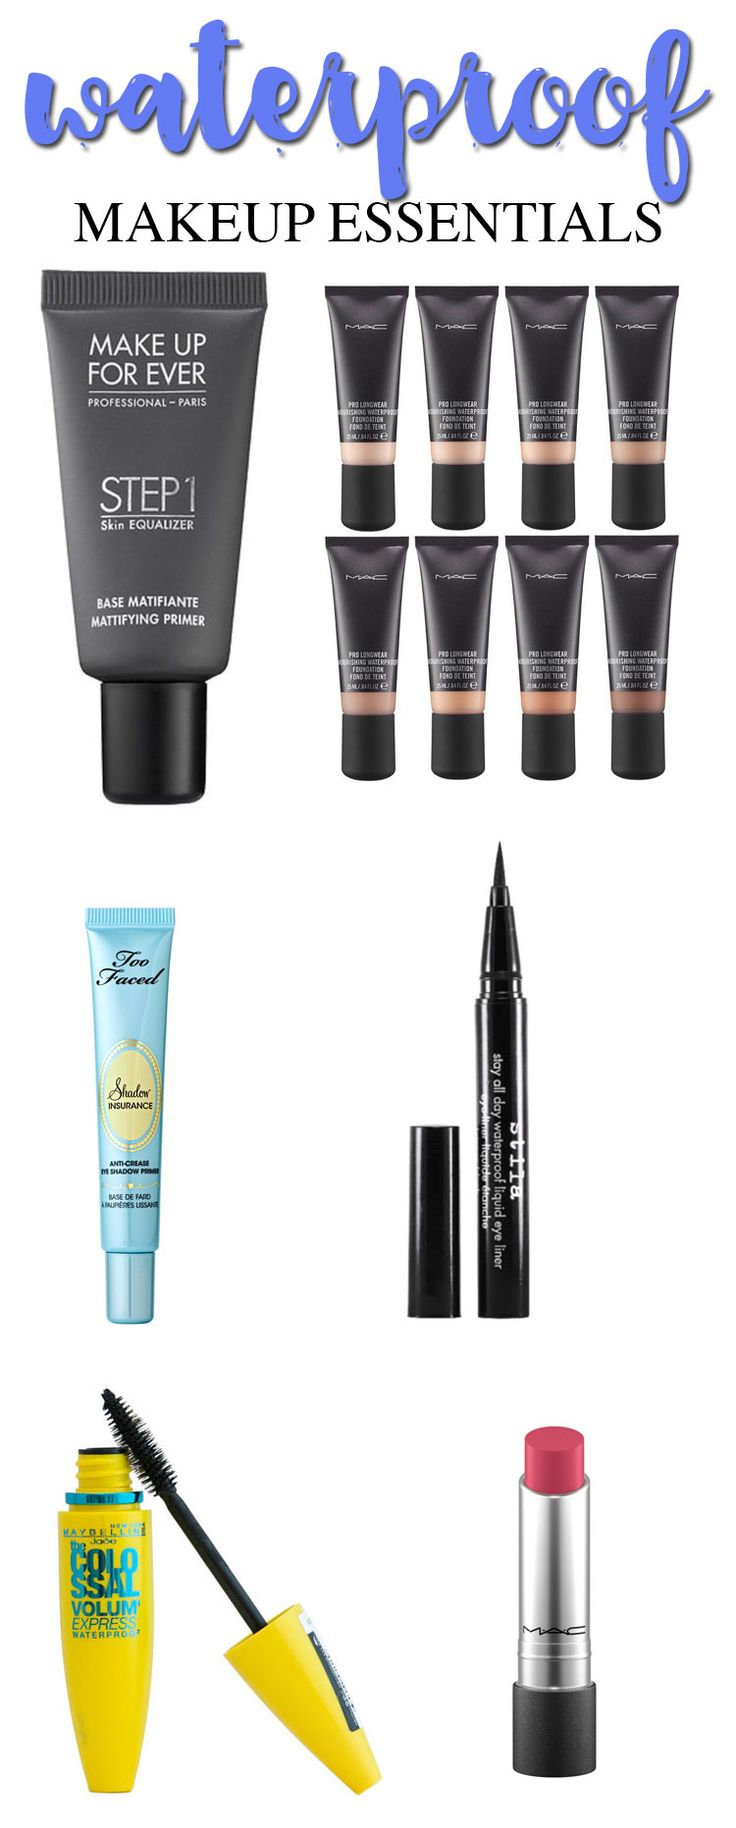 Waterproof Makeup Essentials #deals #ad